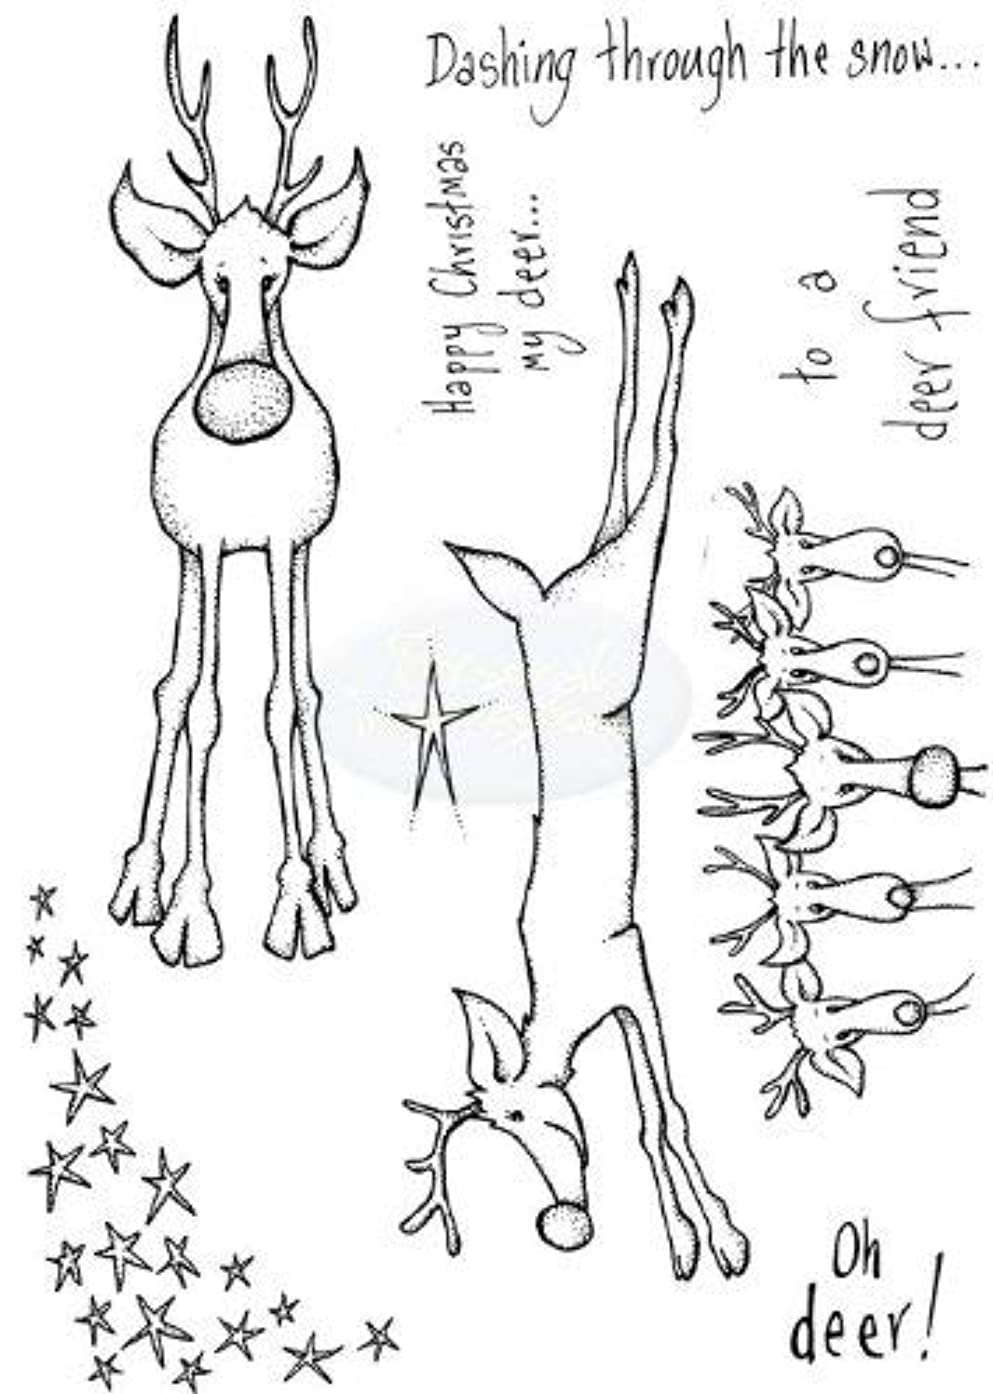 Lindsay Mason Designs A6 Oh Deer Doo-Lally-Pip Clear Stamp, Transparent